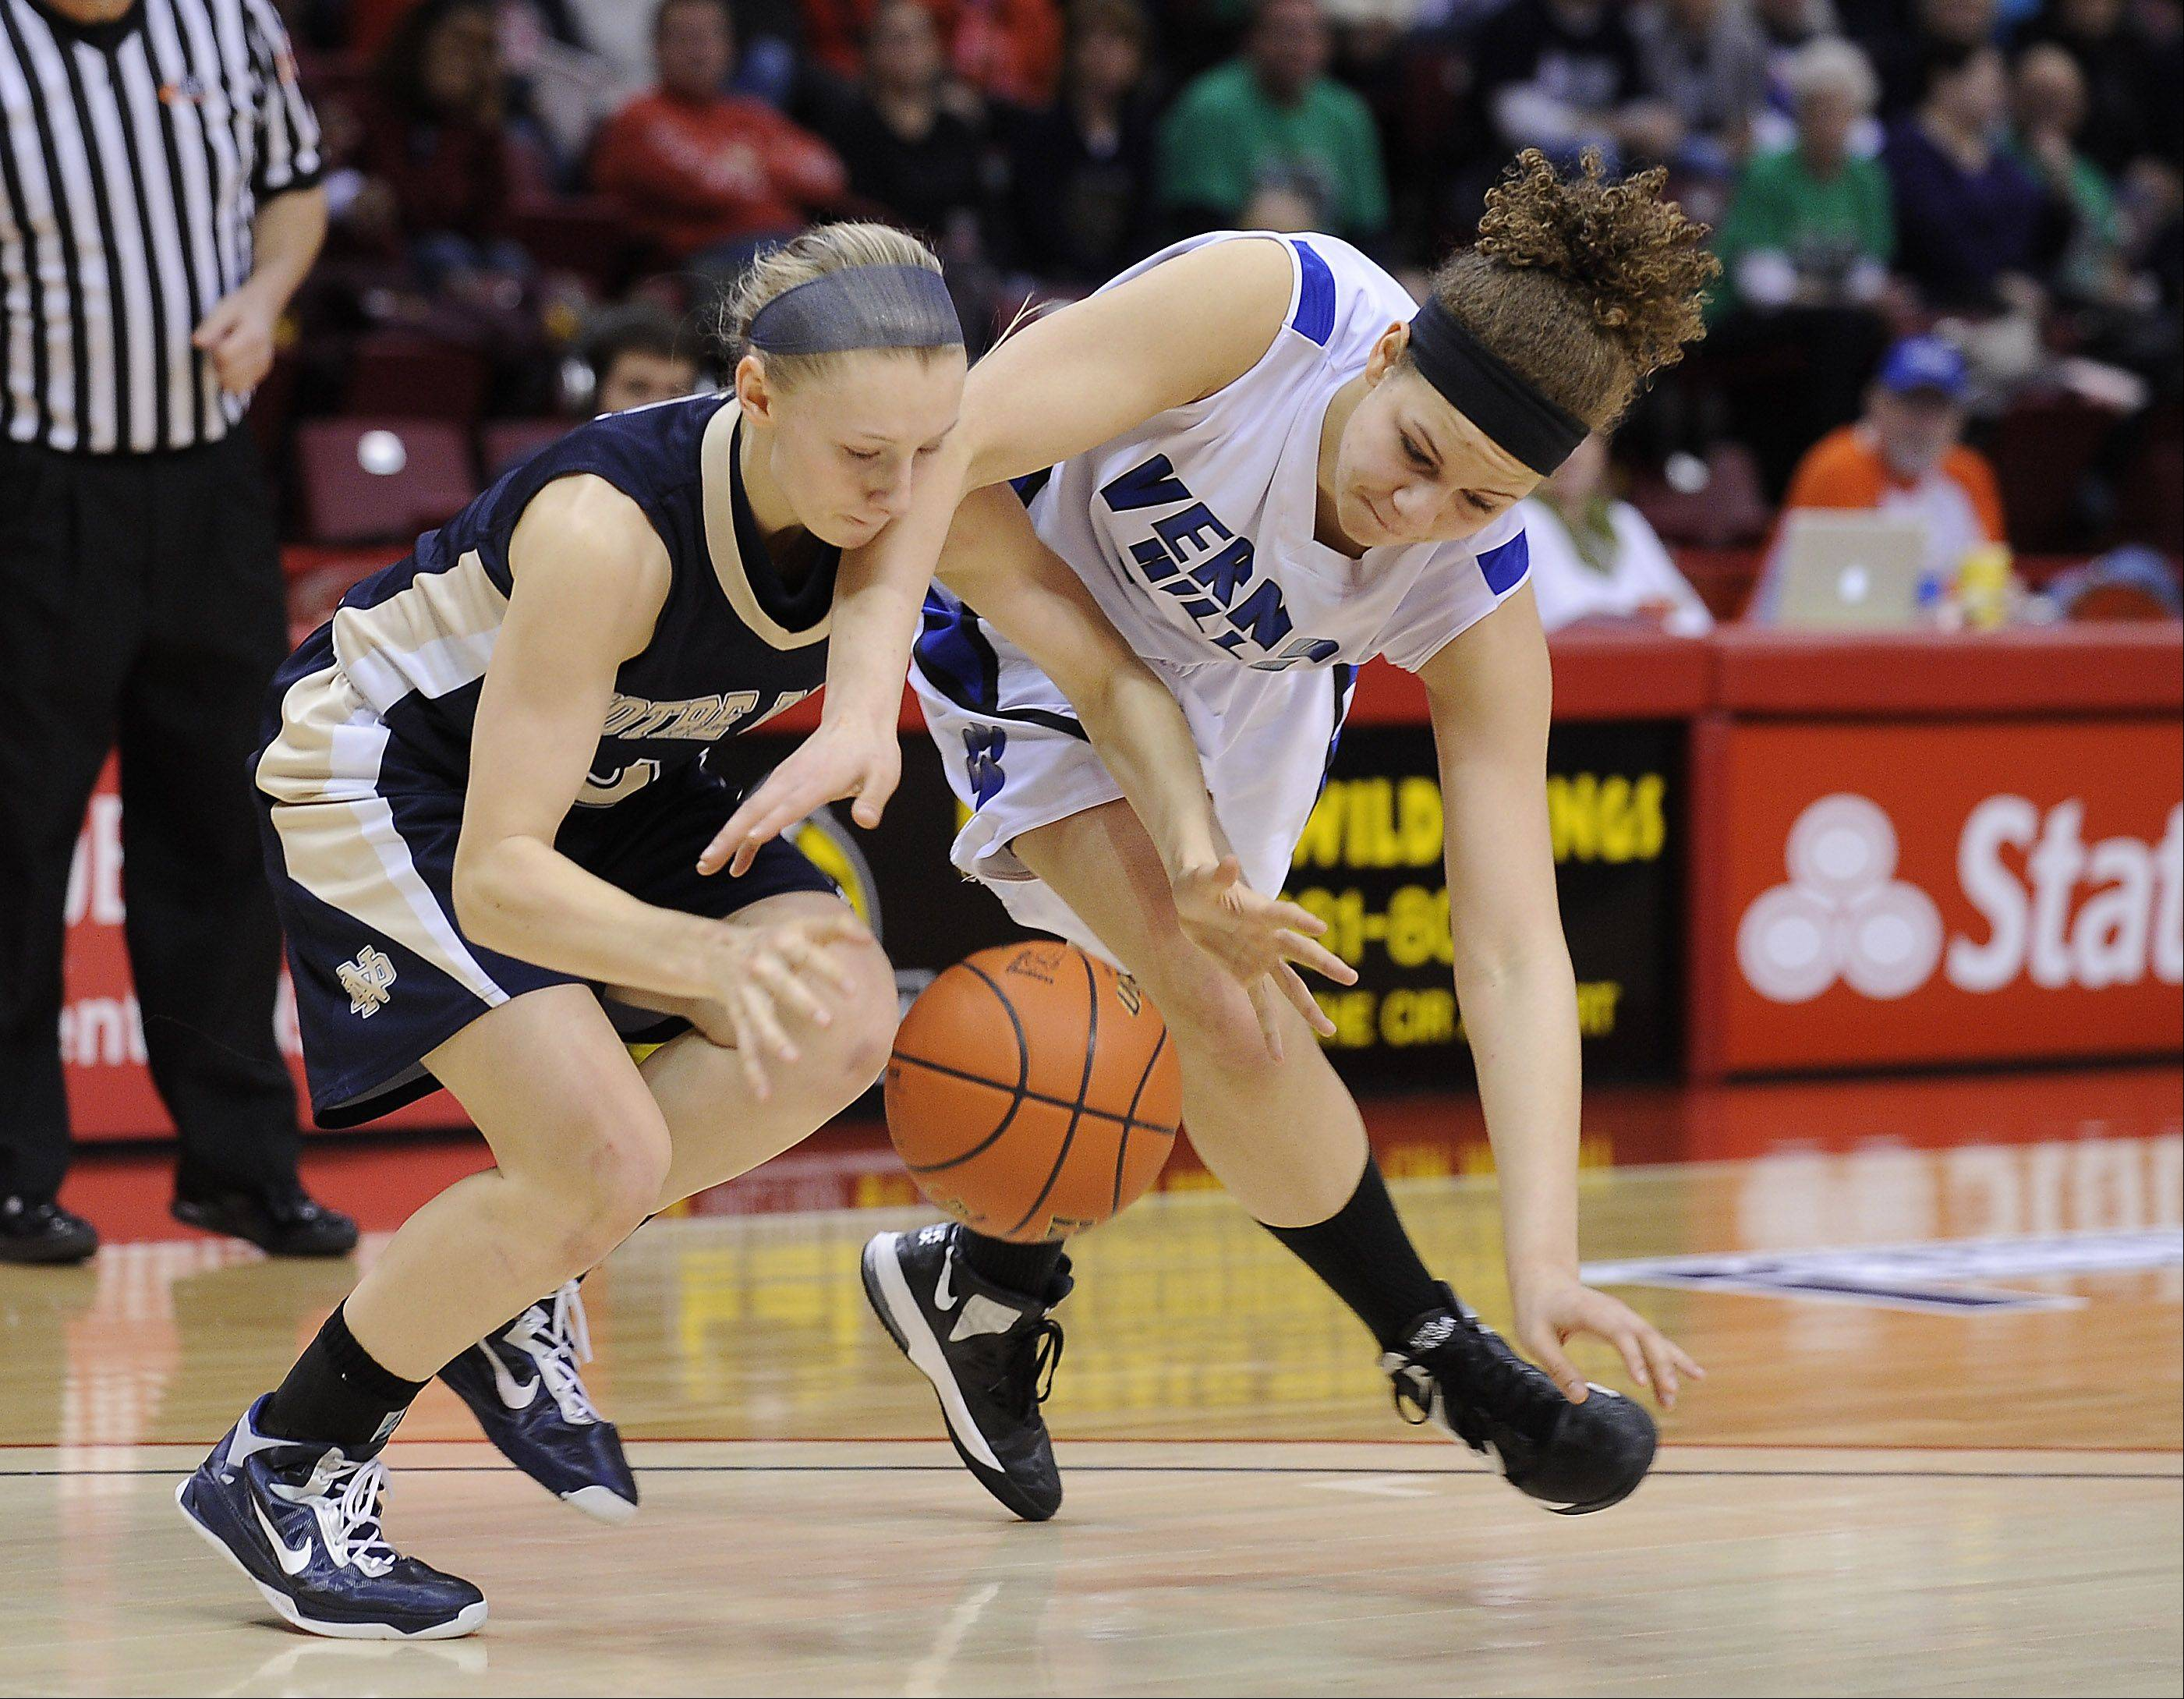 Vernon Hills Brie Bahlmann and Quincy Notre Dame Notre Dame's Kristen Gengenbacher battle for a loose ball in the fourth quarter at the Class 3A state girls basketball championship game in Normal on Saturday.